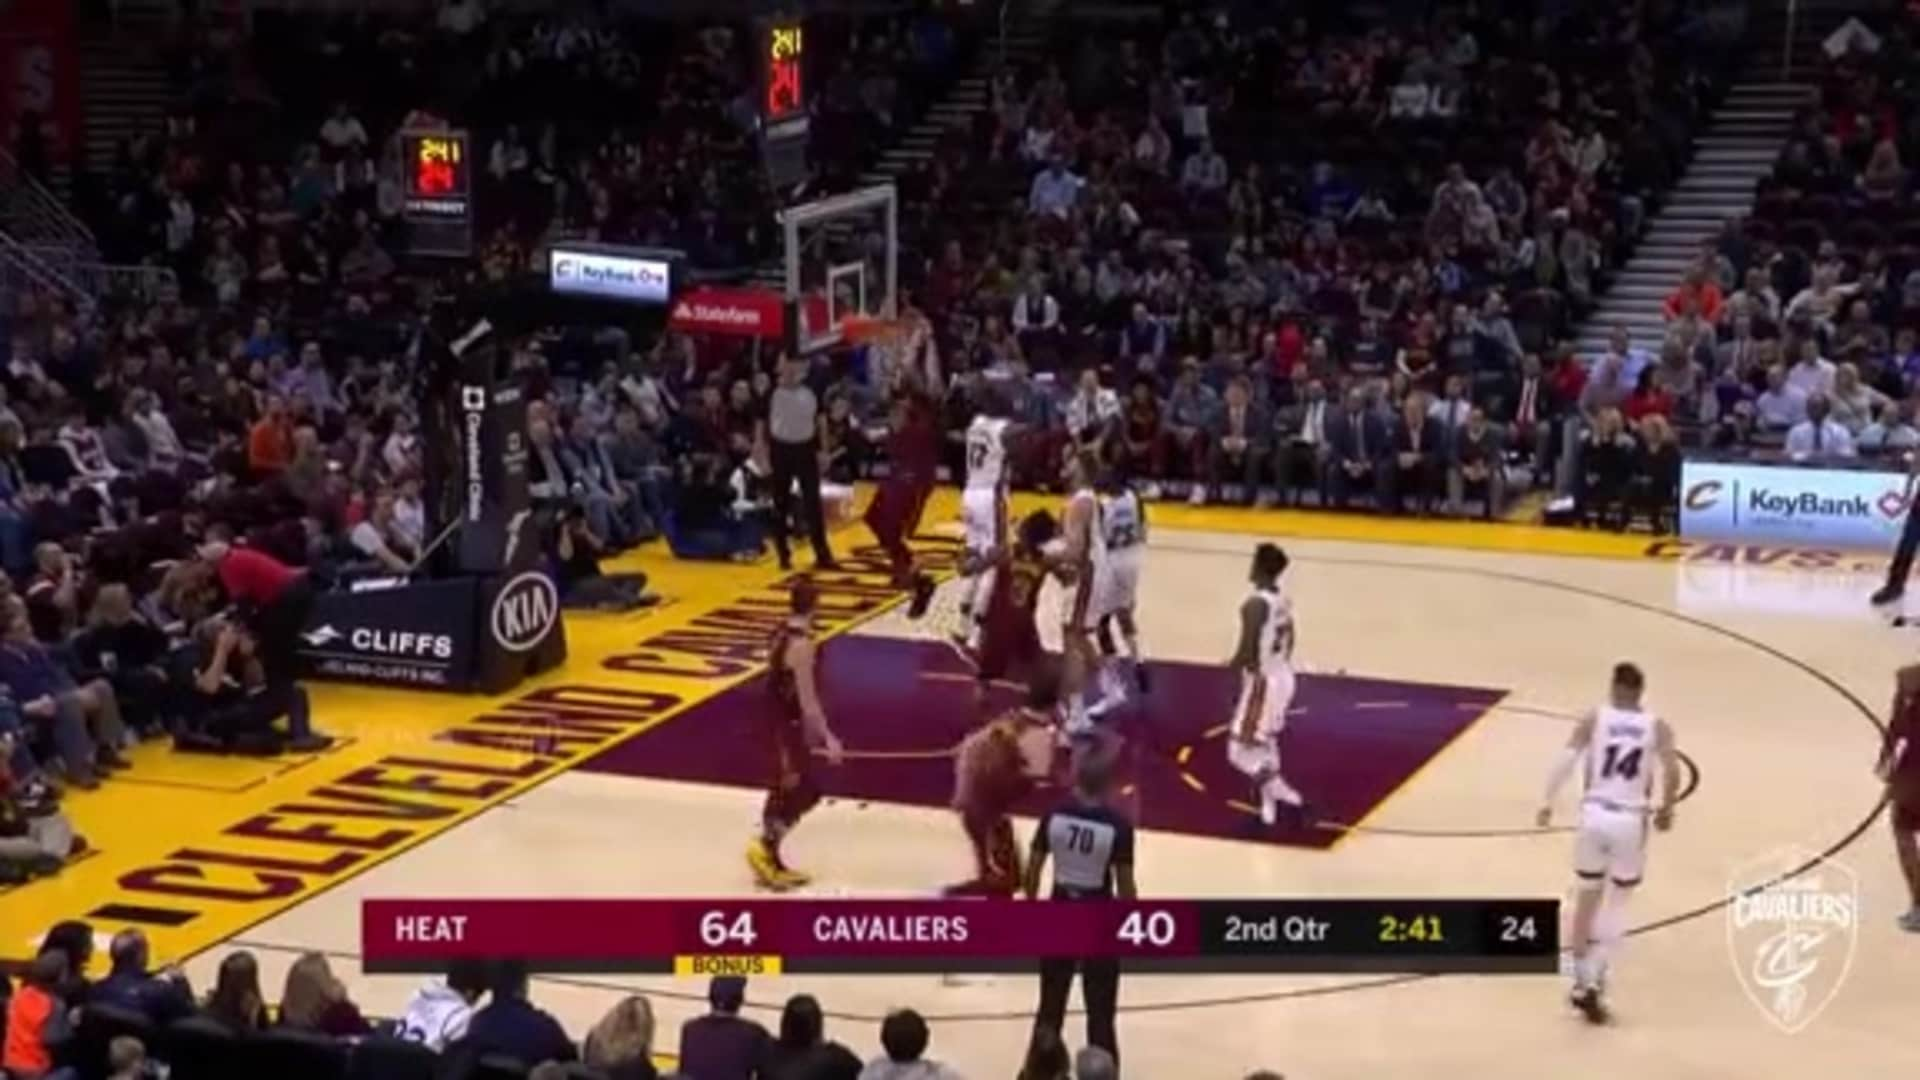 Larry Nance, Jr. Cleans Up the Miss with a Putback Slam